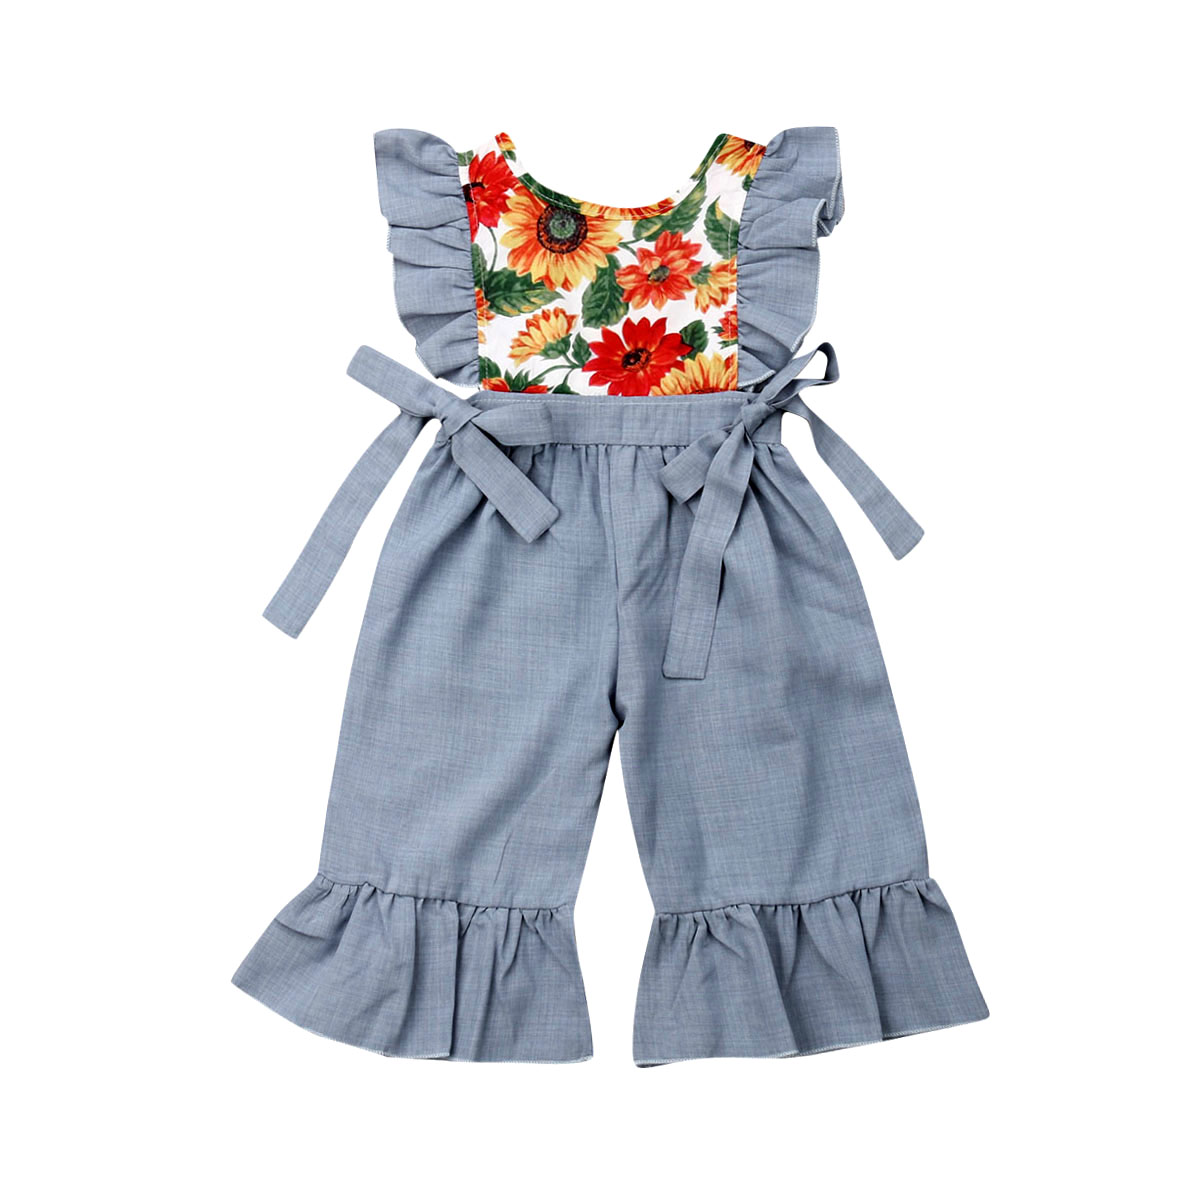 2019 Brand New Toddler Kids Baby Girl Sleeveless Sunflower Ruffle   Romper   Jumpsuit Pallysuit Summer Kids Putfits Clothes